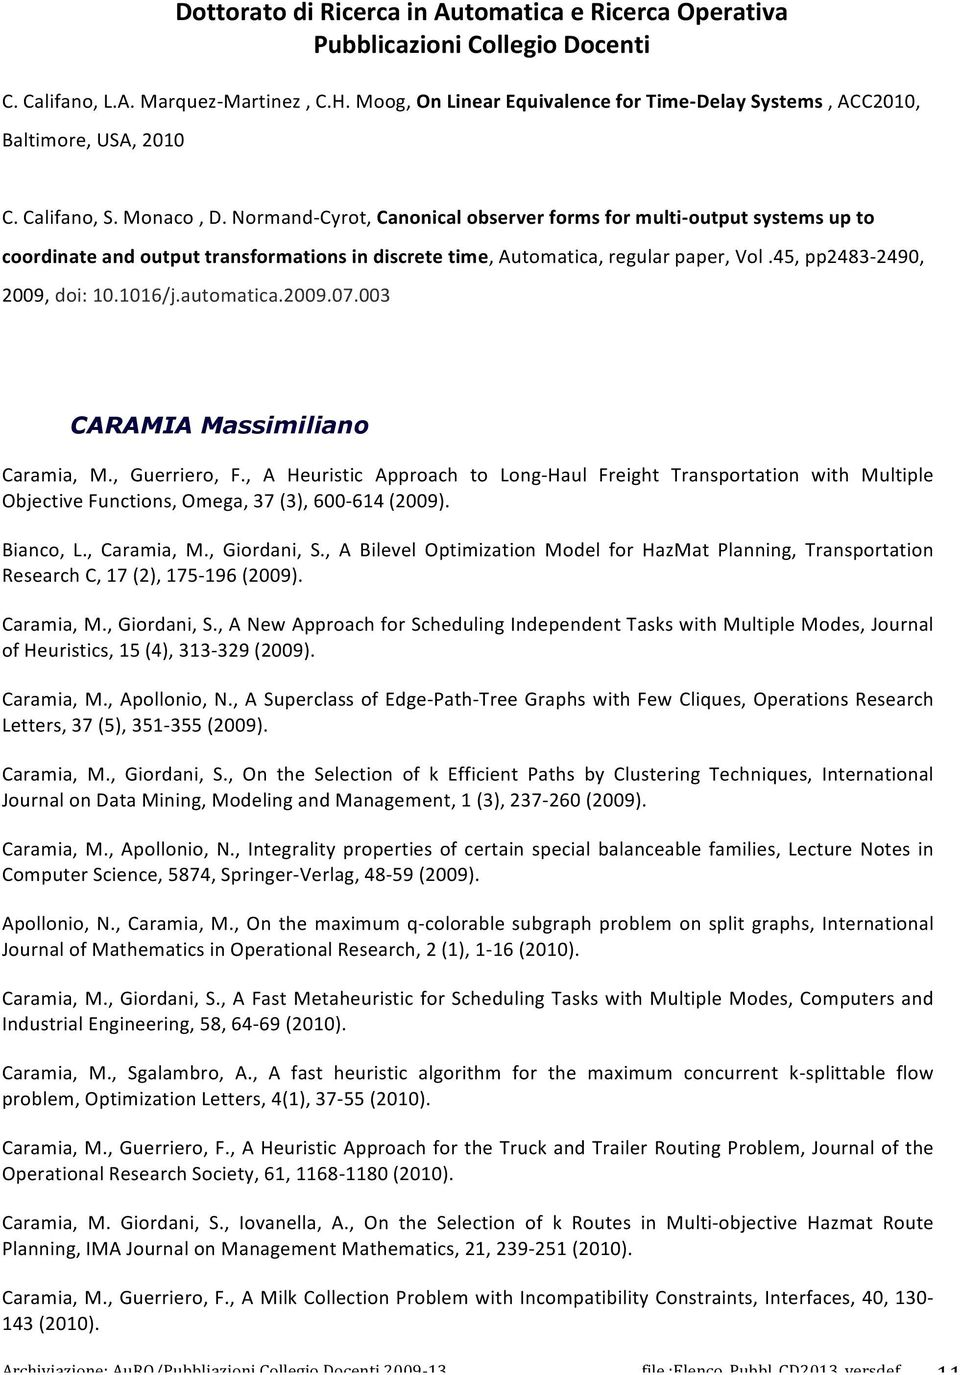 003 CARAMIA Massimiliano Caramia, M., Guerriero, F., A Heuristic Approach to LongZHaul Freight Transportation with Multiple ObjectiveFunctions,Omega,37(3),600Z614(2009). Bianco, L., Caramia, M.